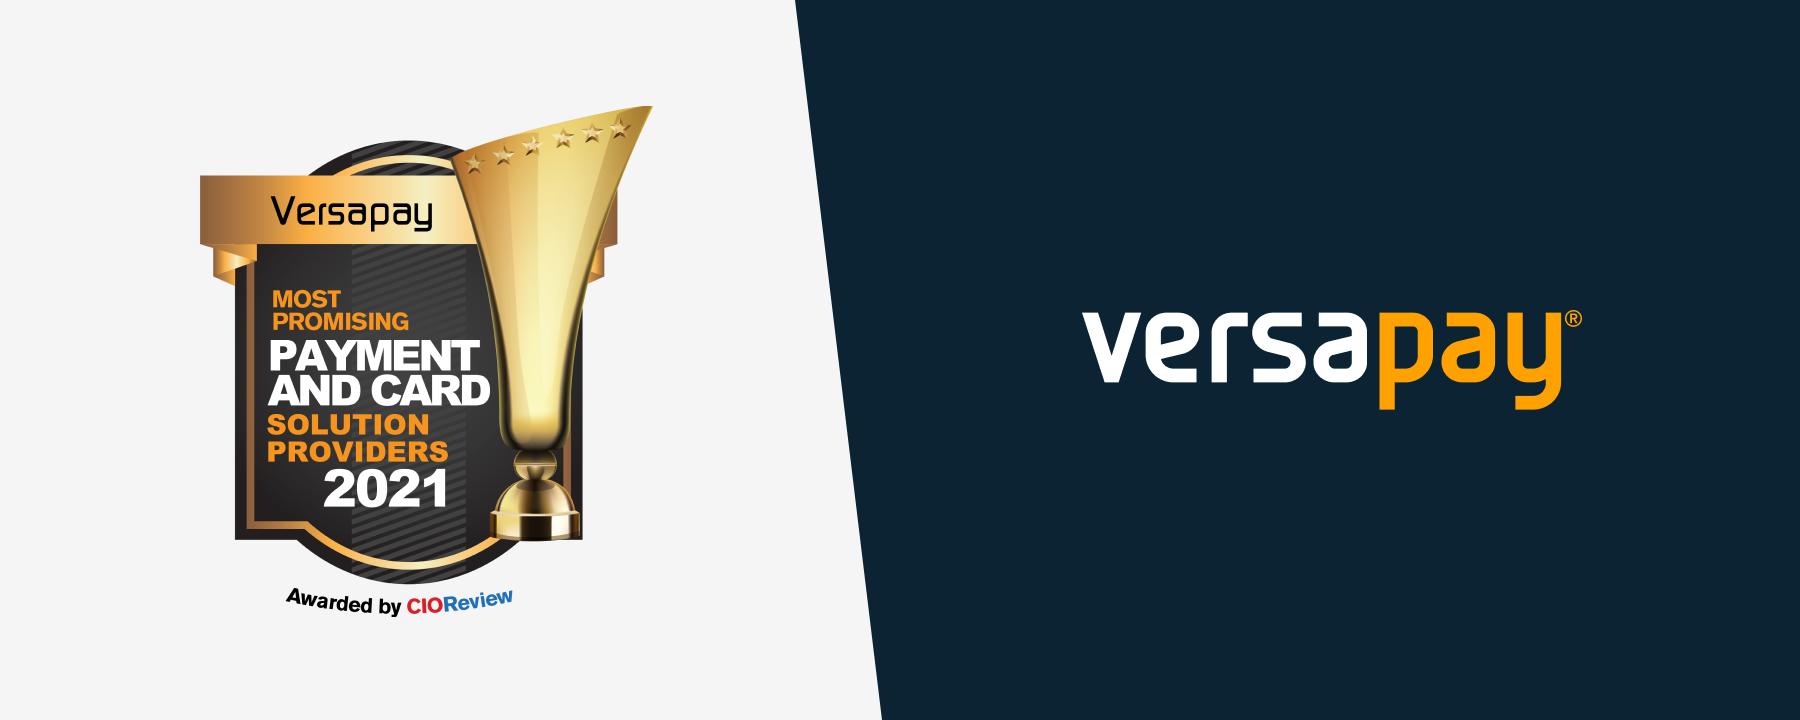 Versapay Named Most Promising Payment and Card Solution Provider of 2021